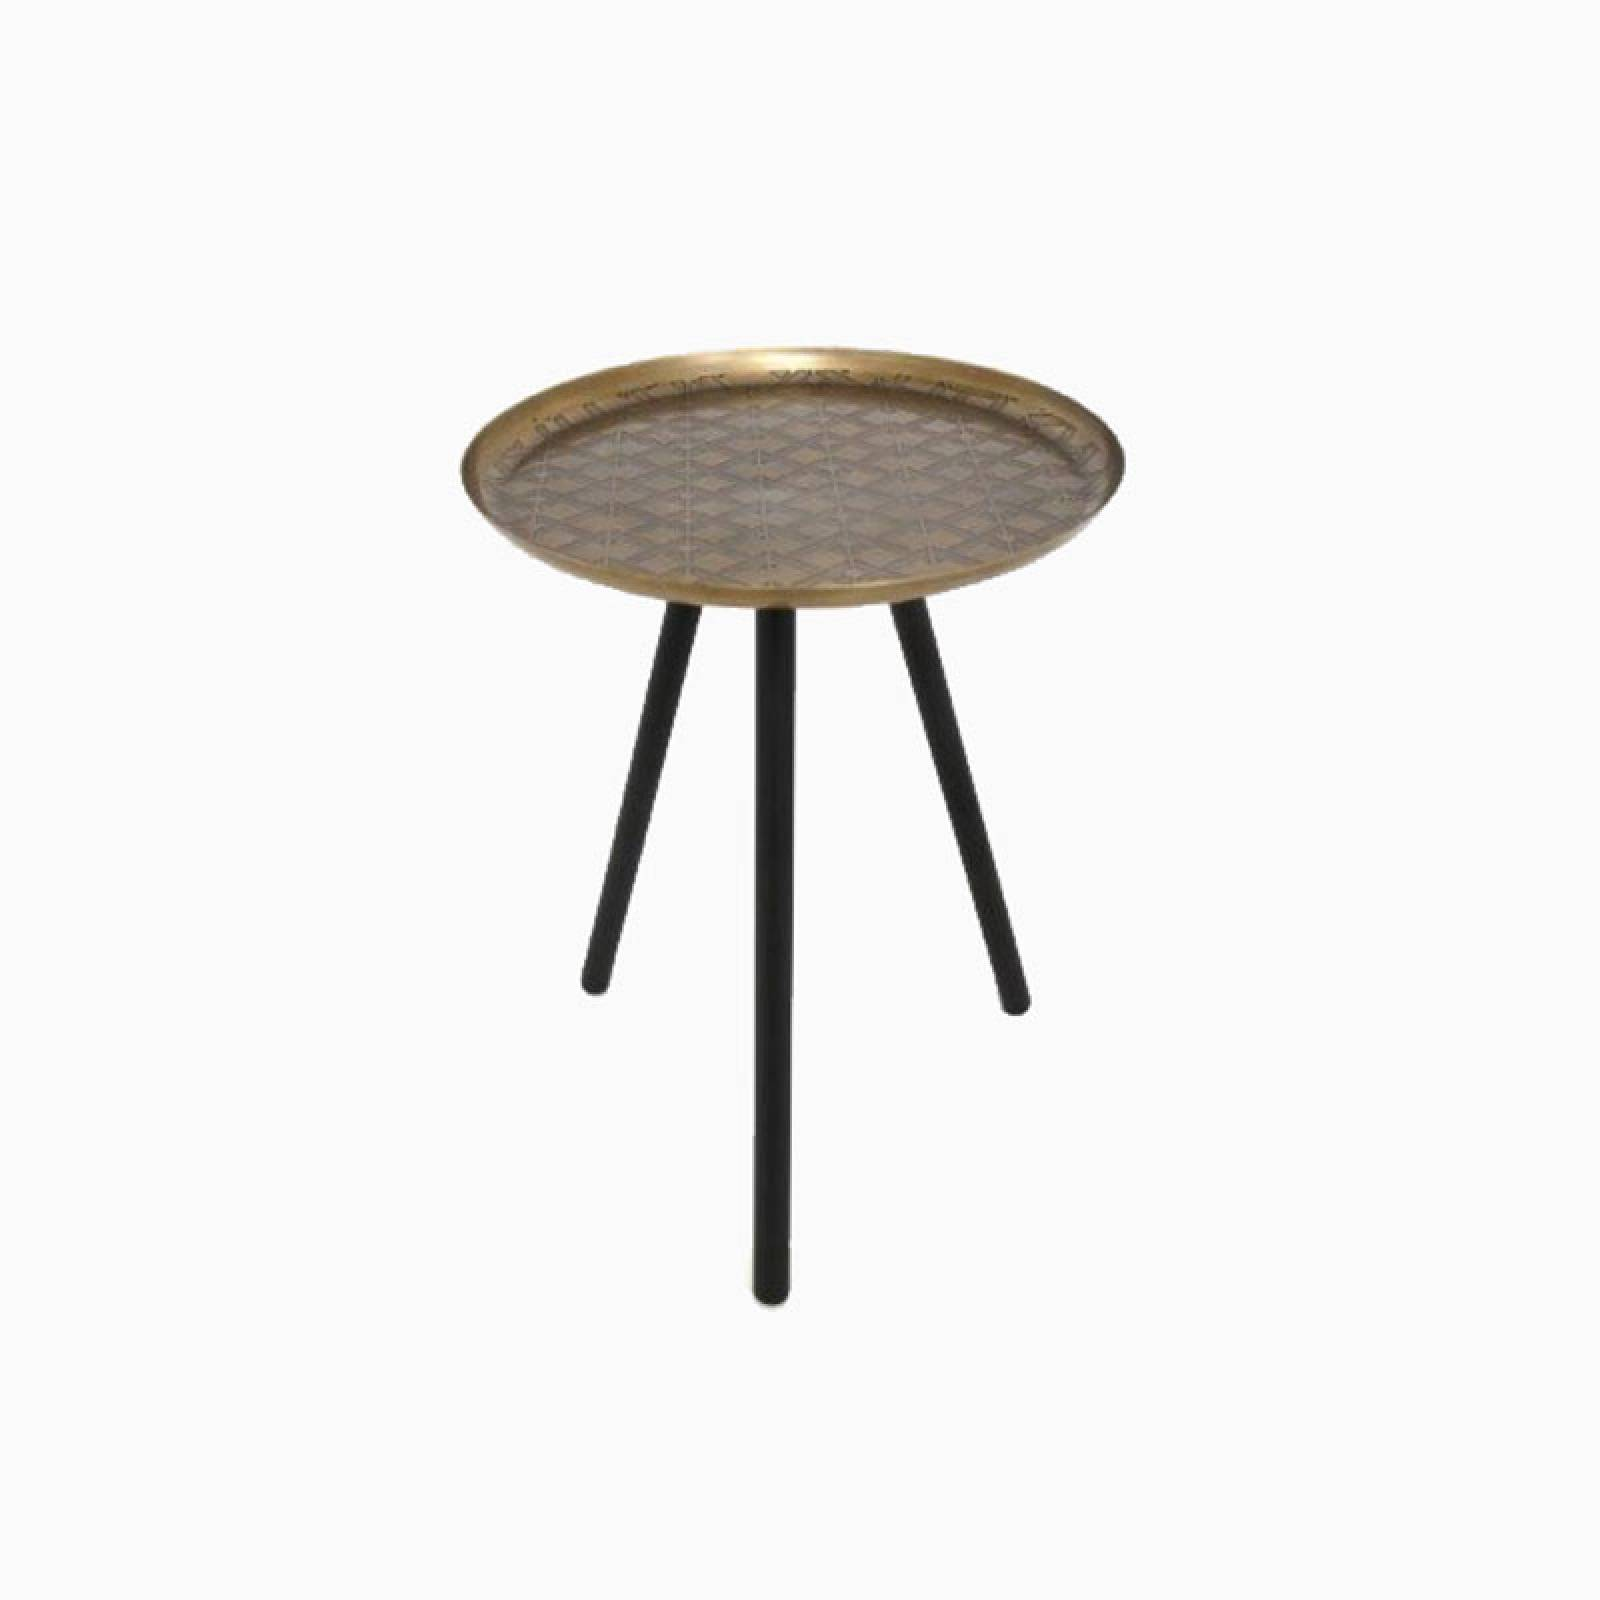 Small Gold Side Table With Patterned Top